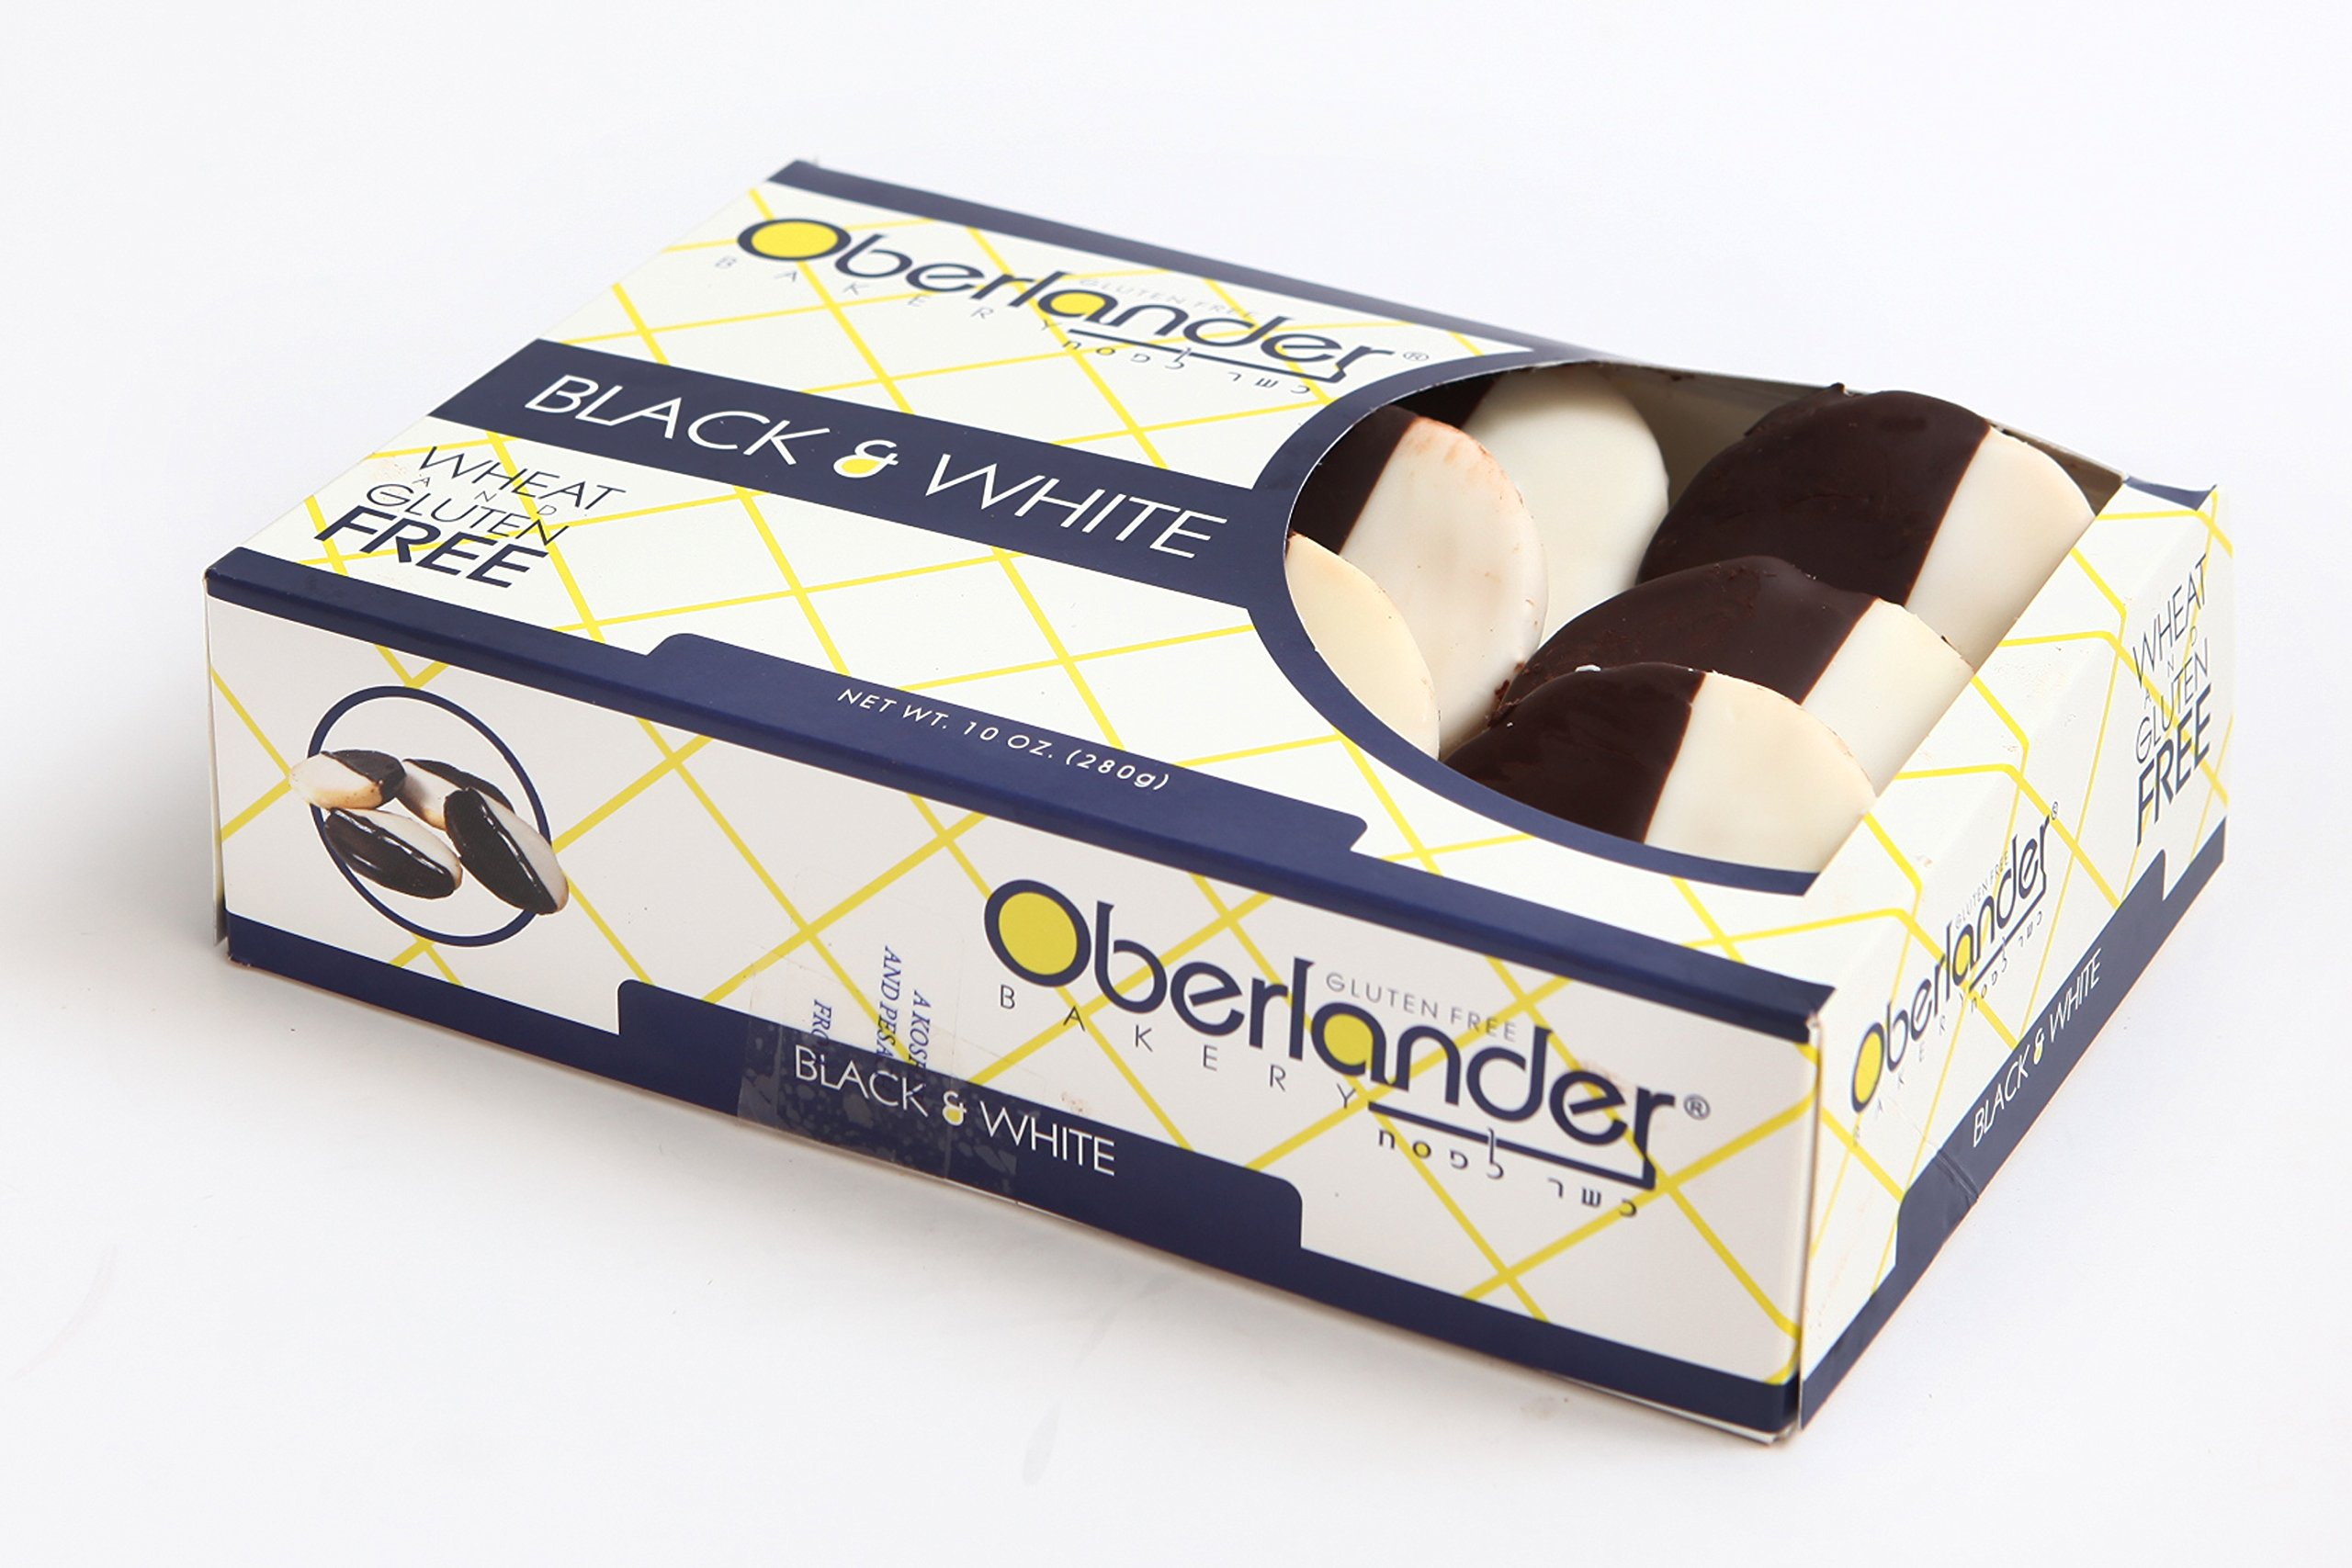 Oberlander's Gluten Free Black & White Cookies - Wheat, Soy & Dairy Free - Certified Kosher for Passover & Year-round - 10 OZ